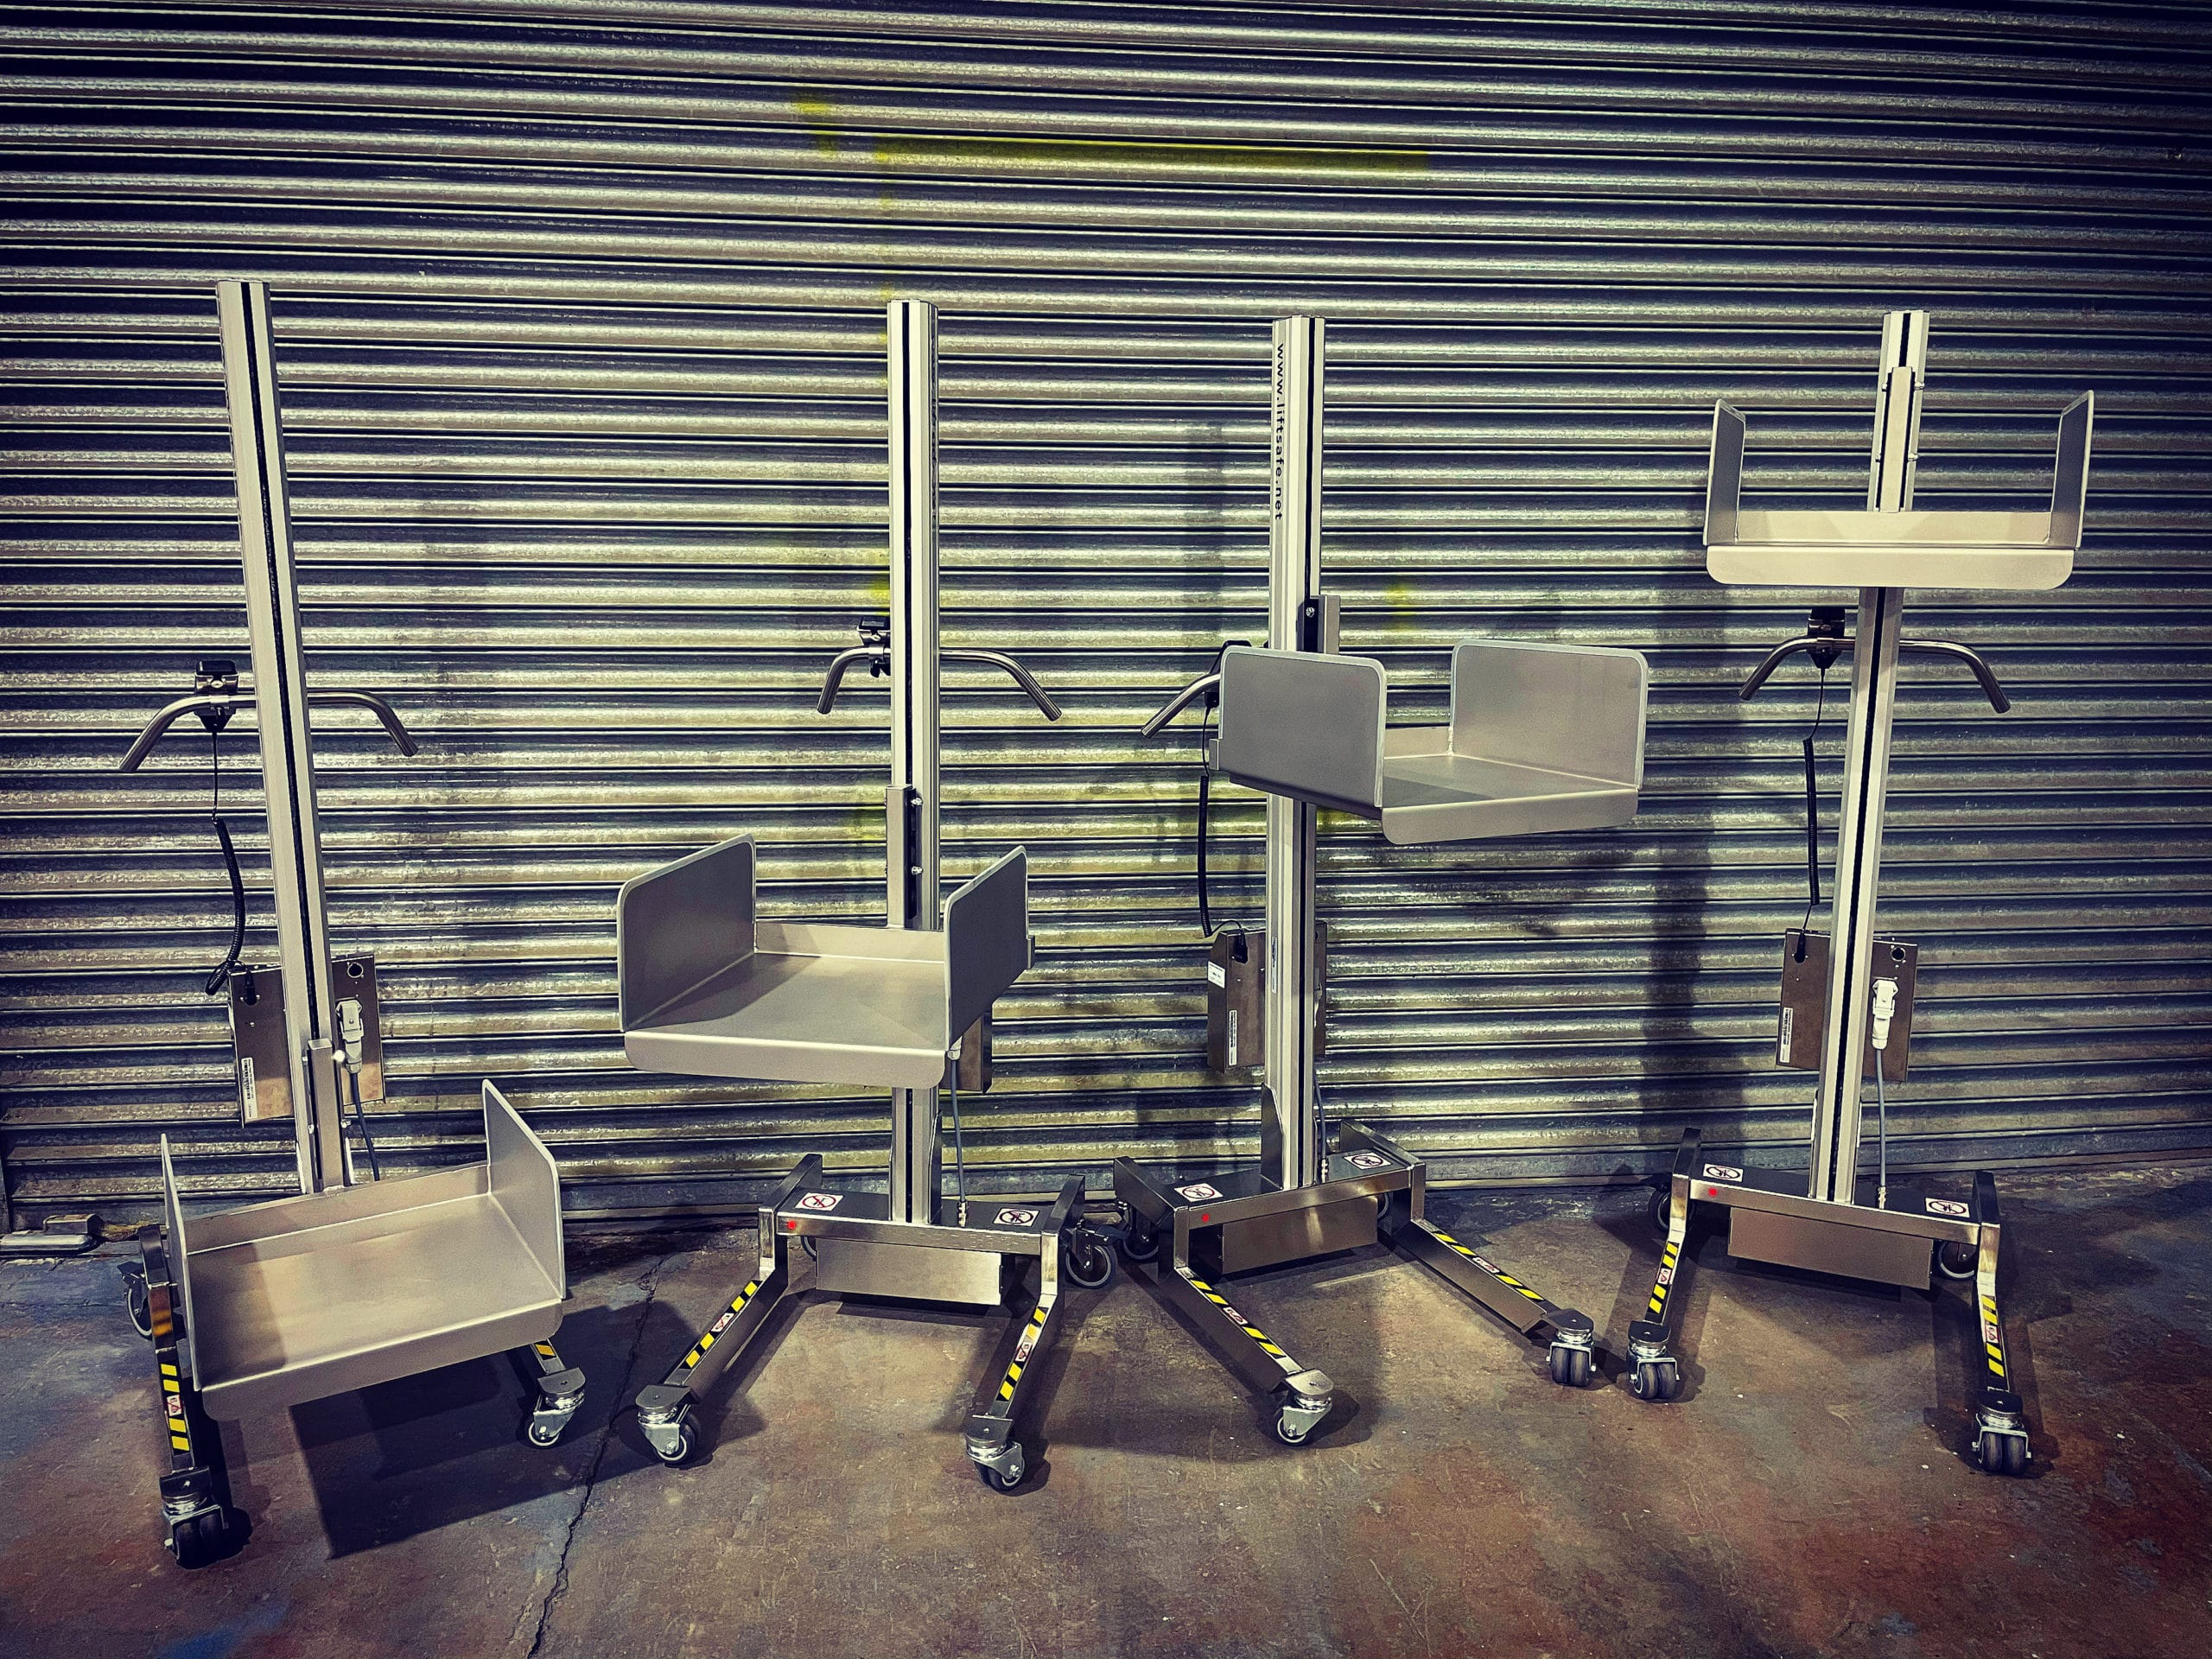 NHS Trust Site In South East Take Delivery of 4 Stainless Steel Lifters